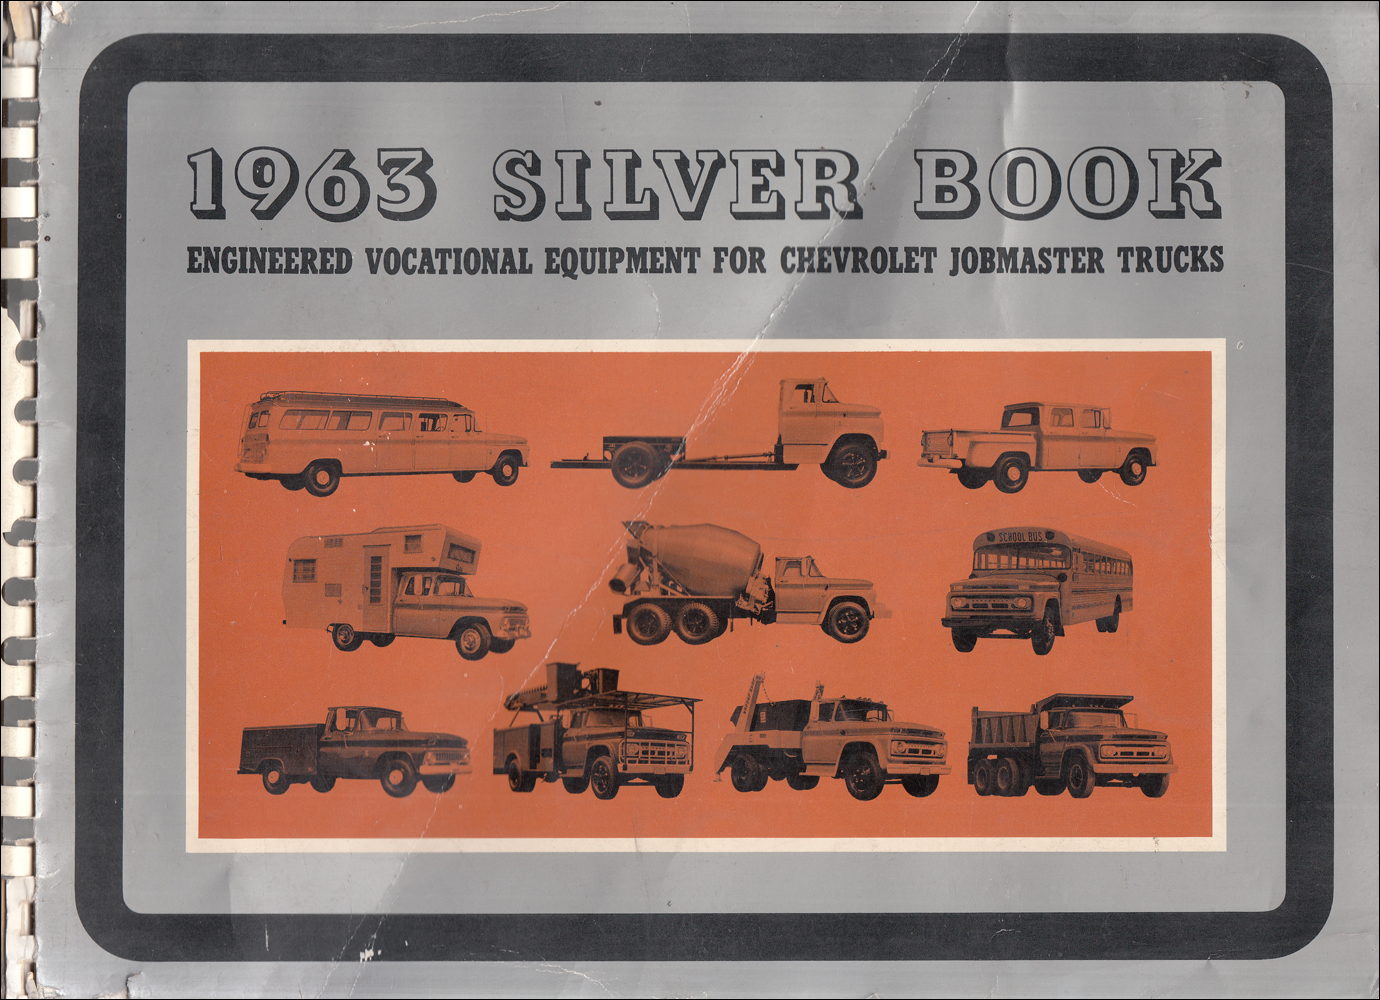 1963 Chevrolet Truck Silver Book Special Equipment Dealer Album